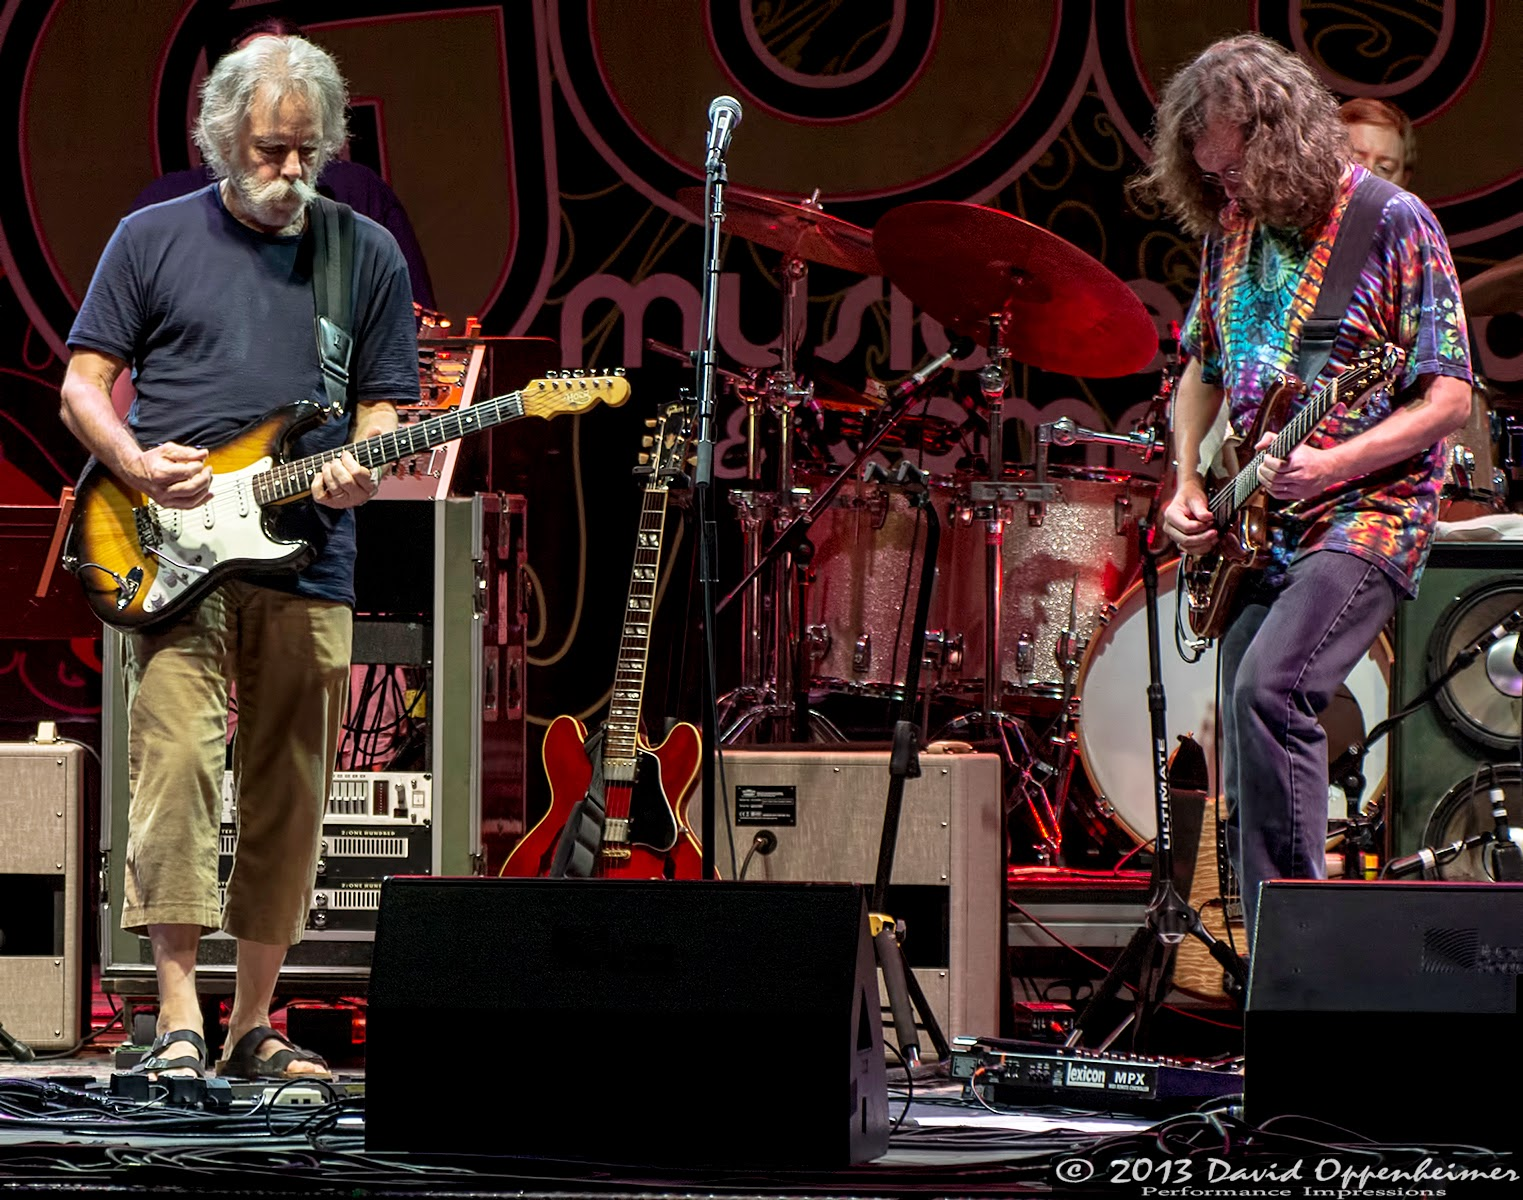 Bob Weir and John Kadlecik with Furthur